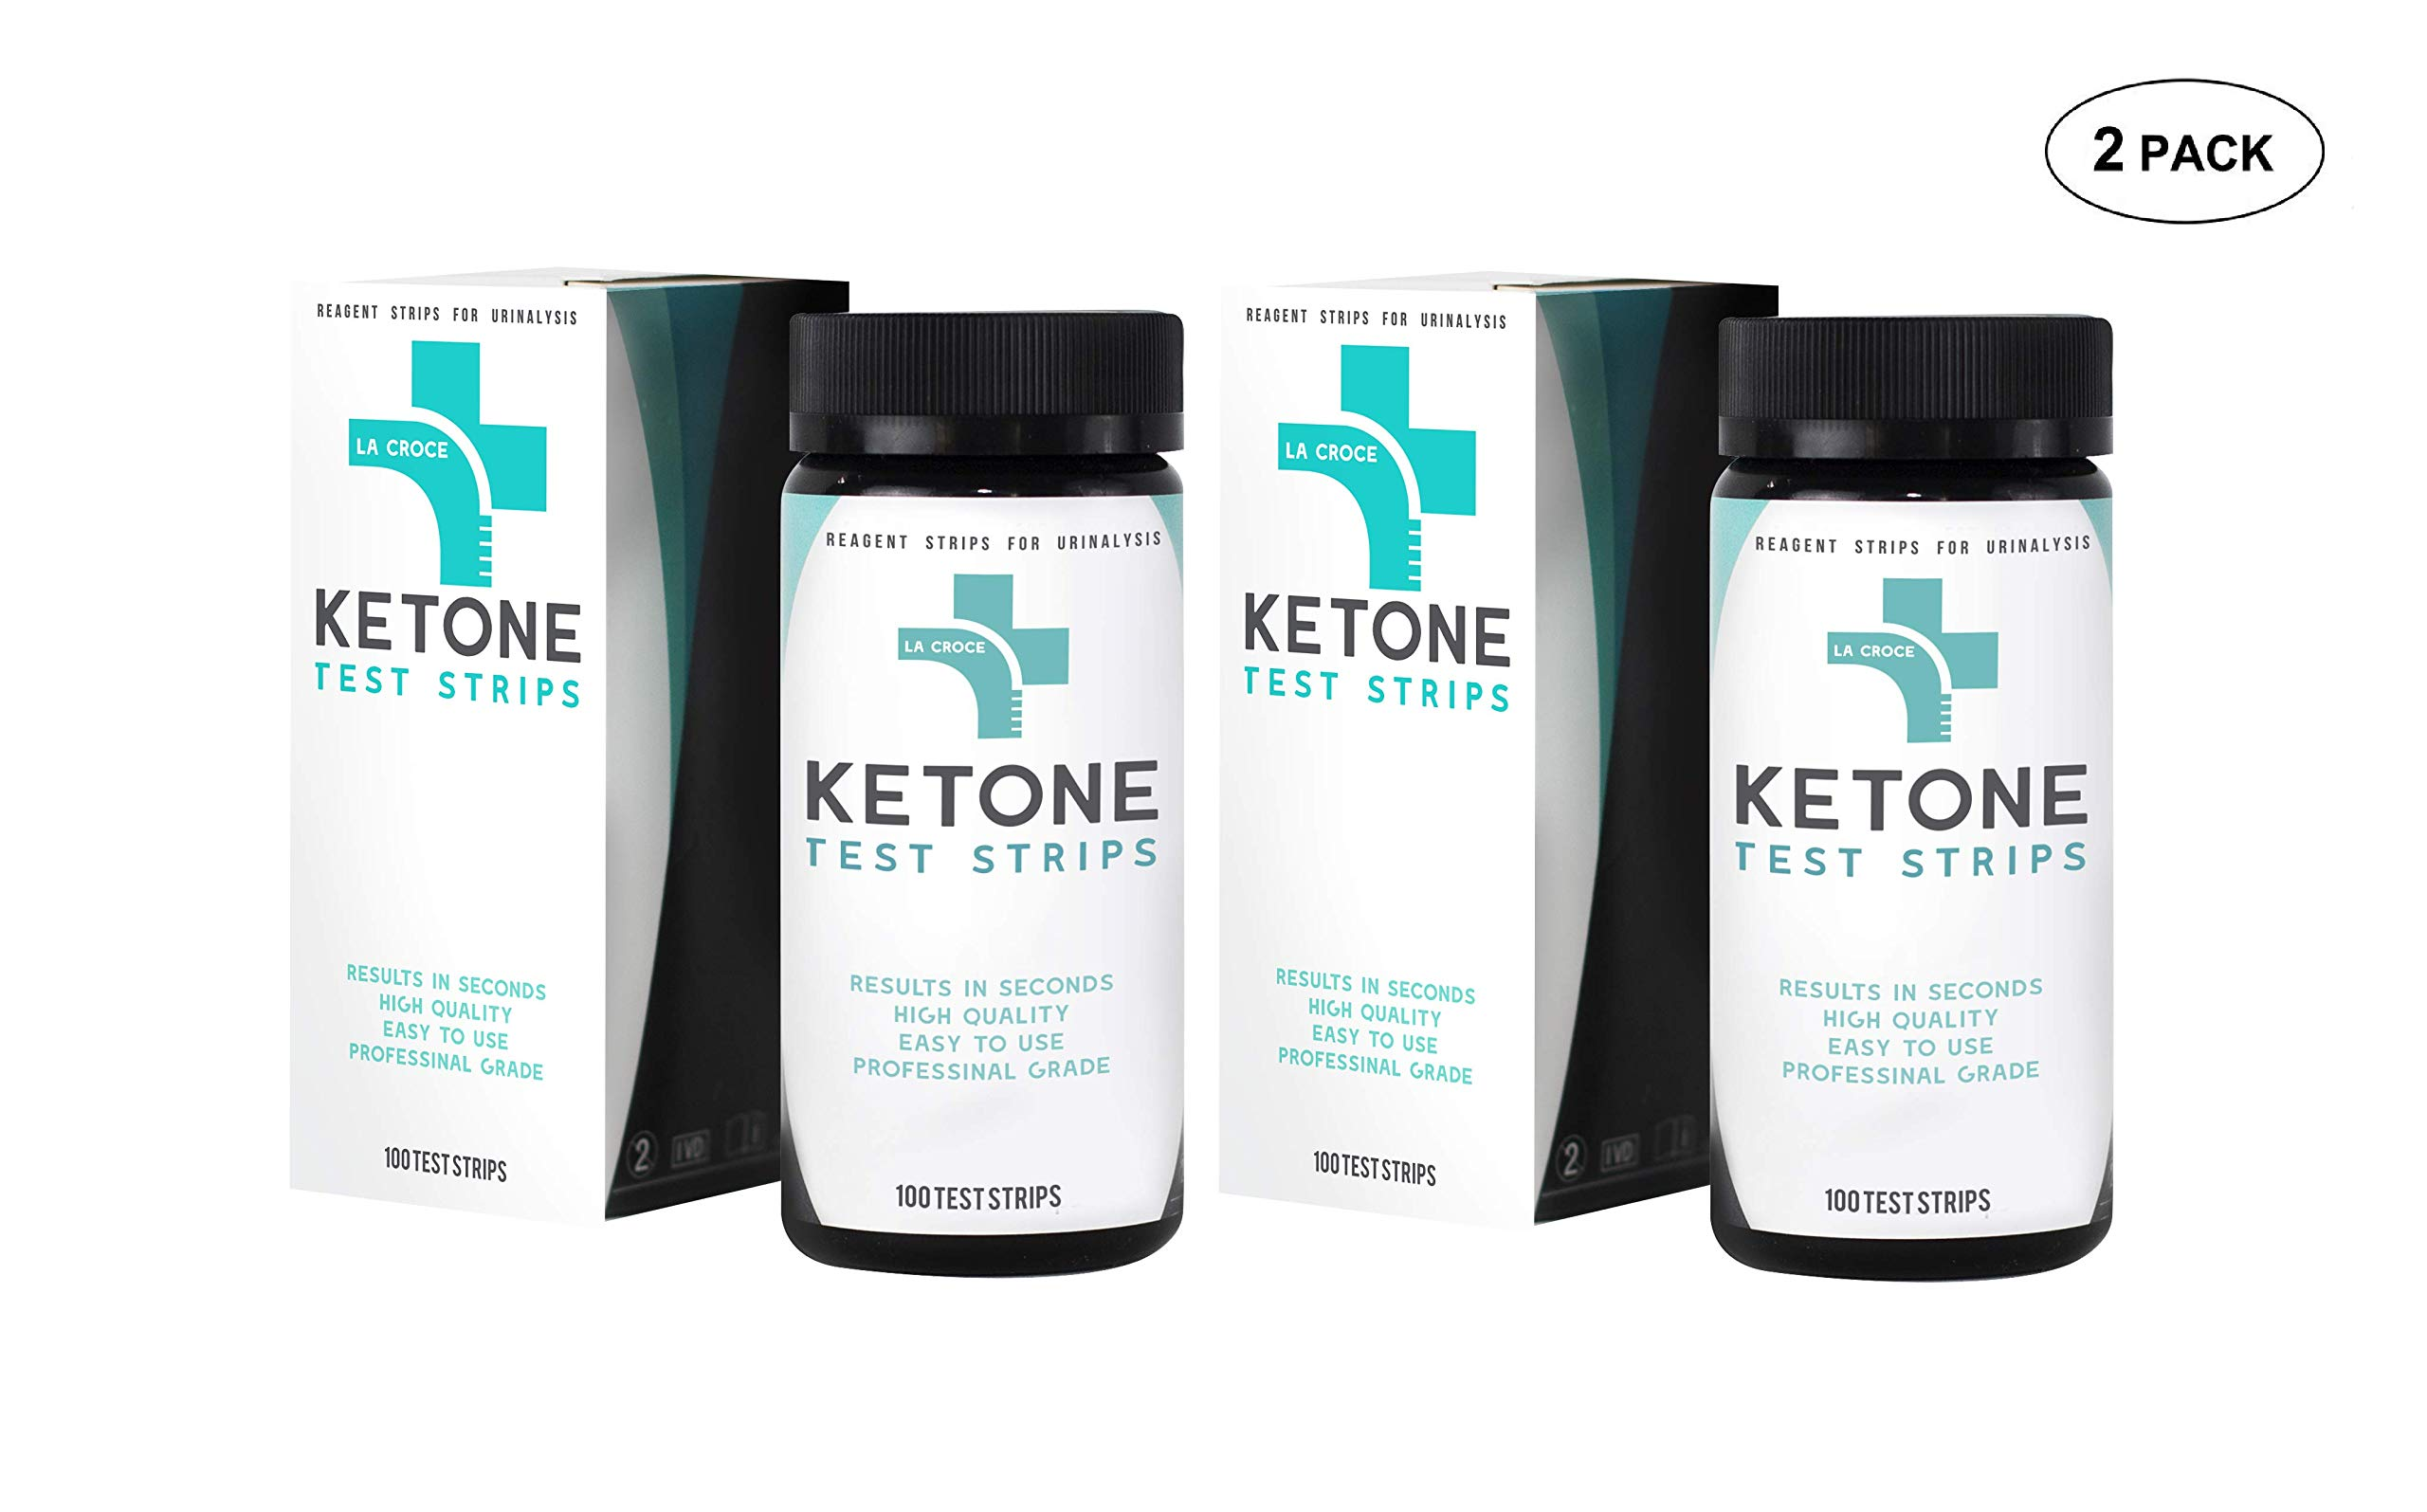 Ketone Keto Urinal Test Strips - Perfect for Ketogenic, Low Carb, Atkins & Paleo Diets, and Ketogenic Measurement, Accurate Result in 15 Seconds, 200 Strips, 2 Packs of 100 Strips by La Croce